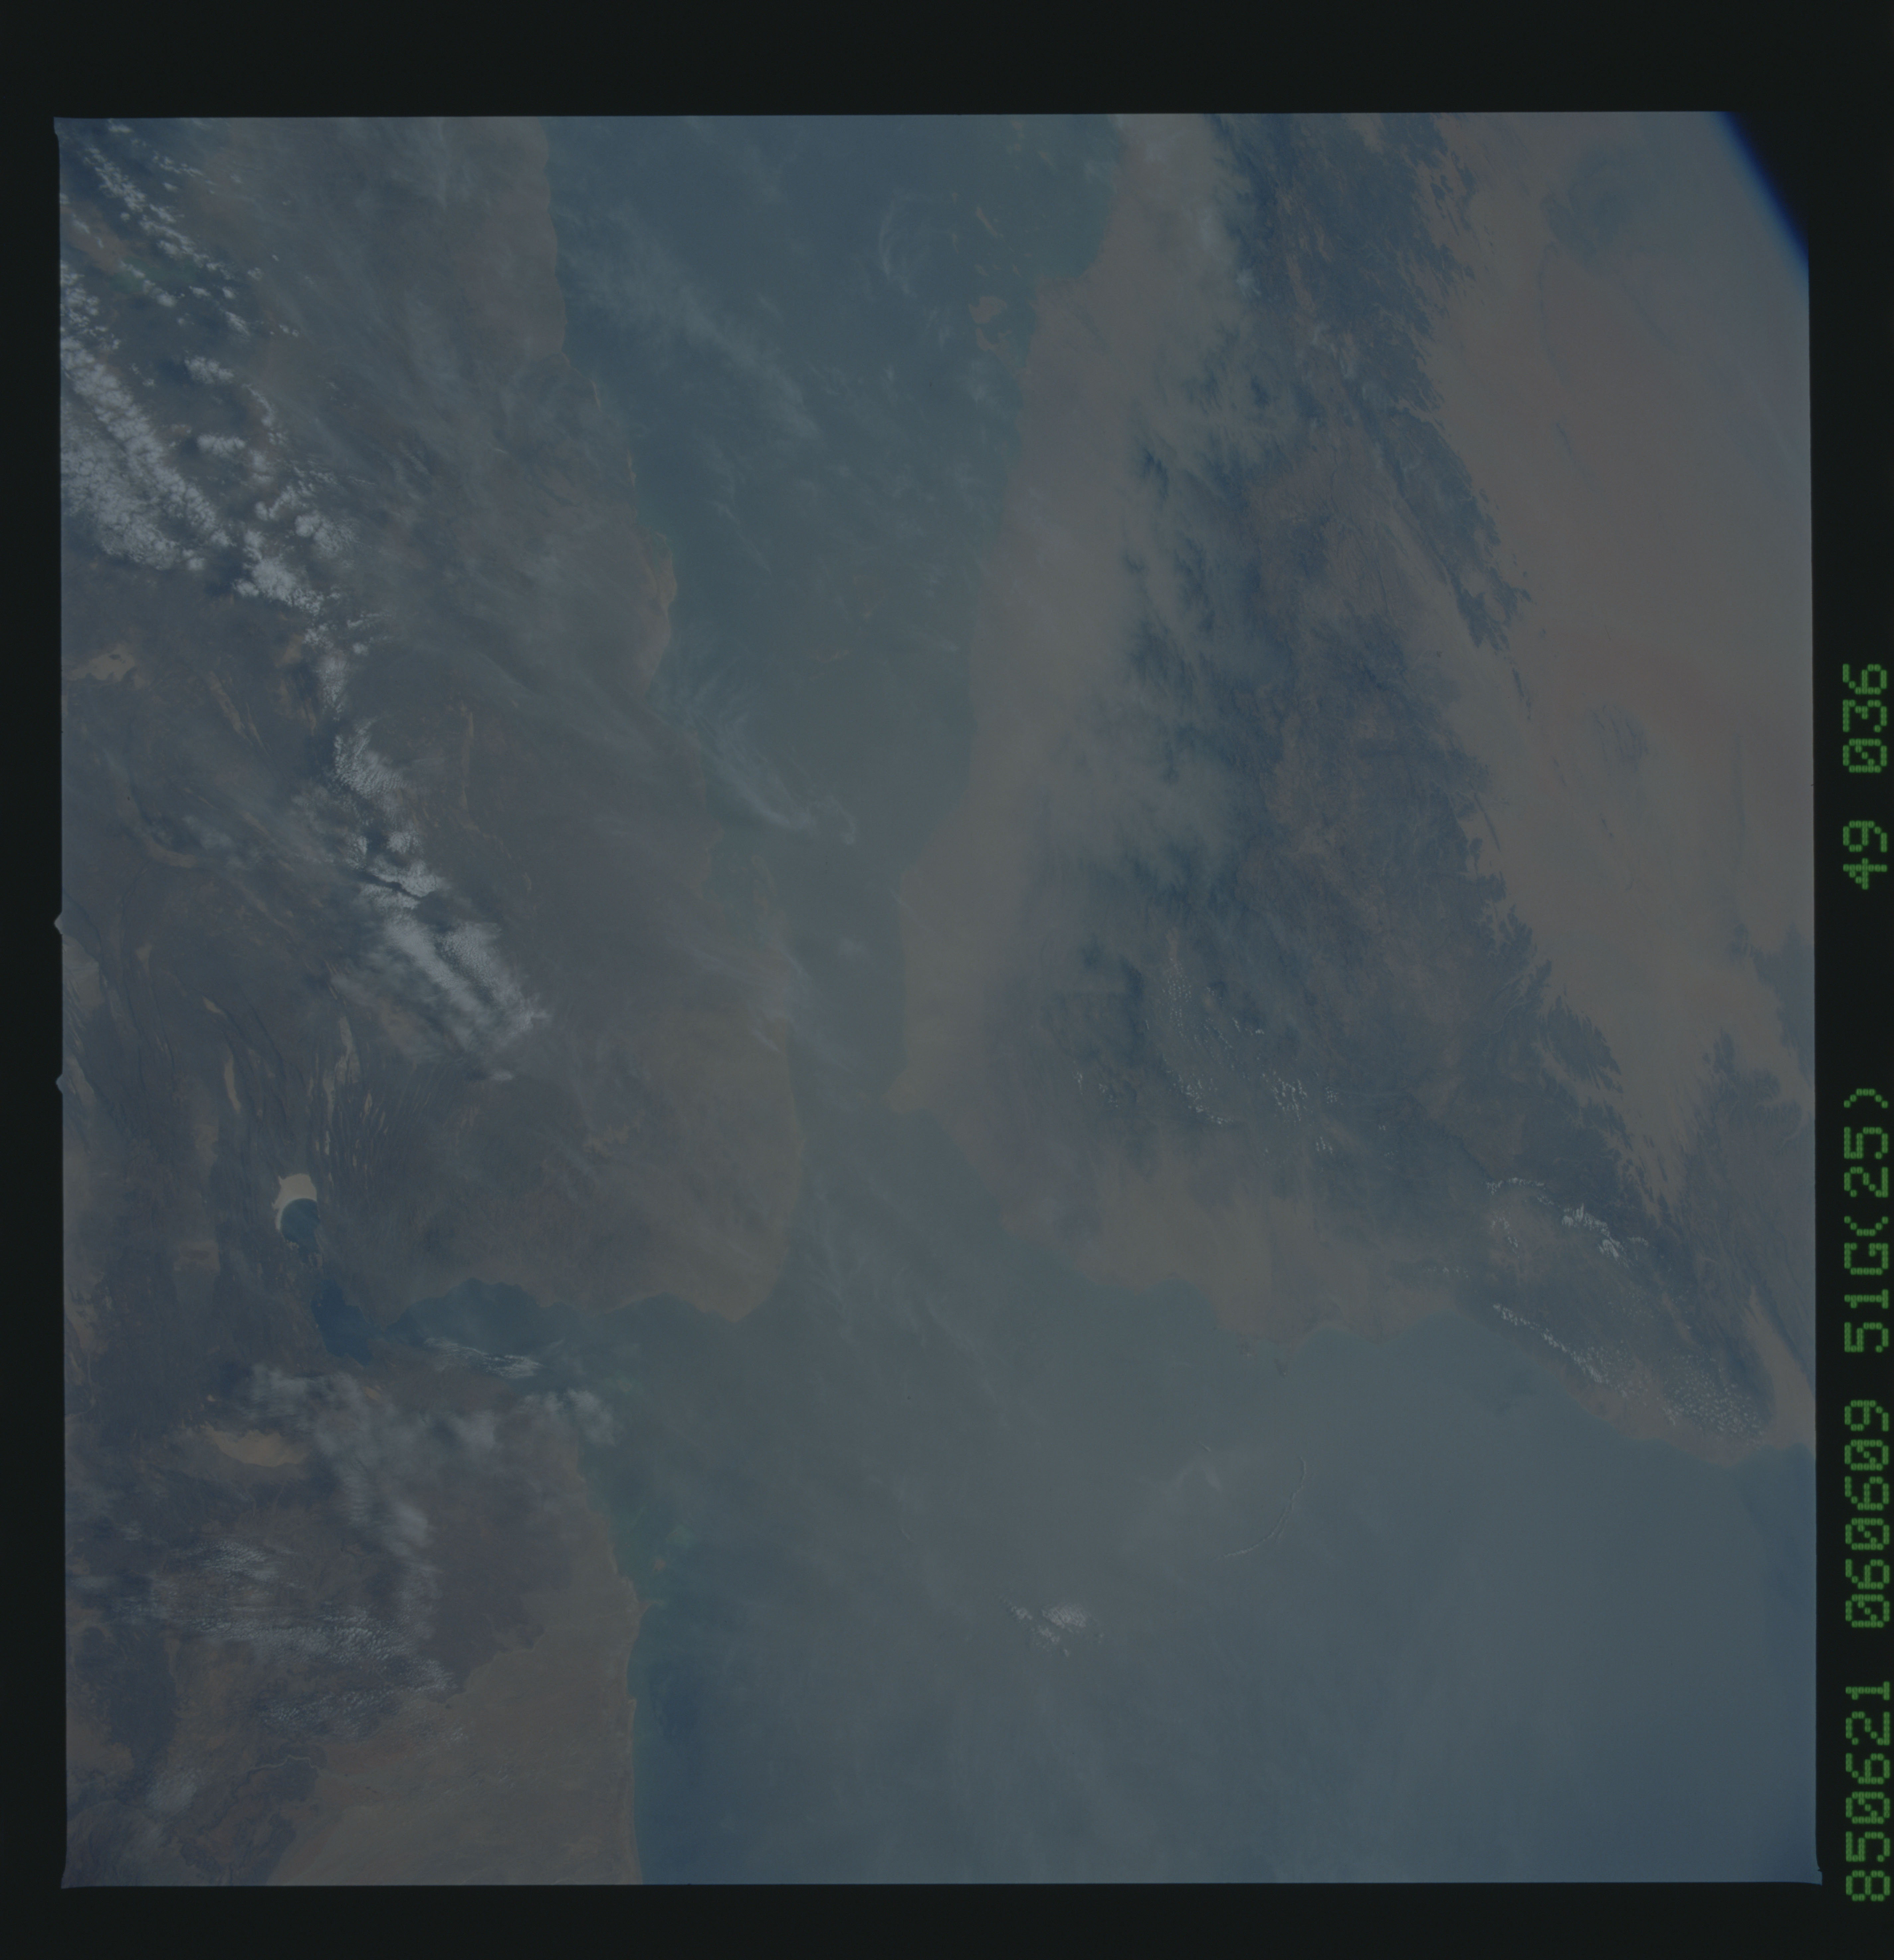 51G-49-036 - STS-51G - STS-51G earth observations